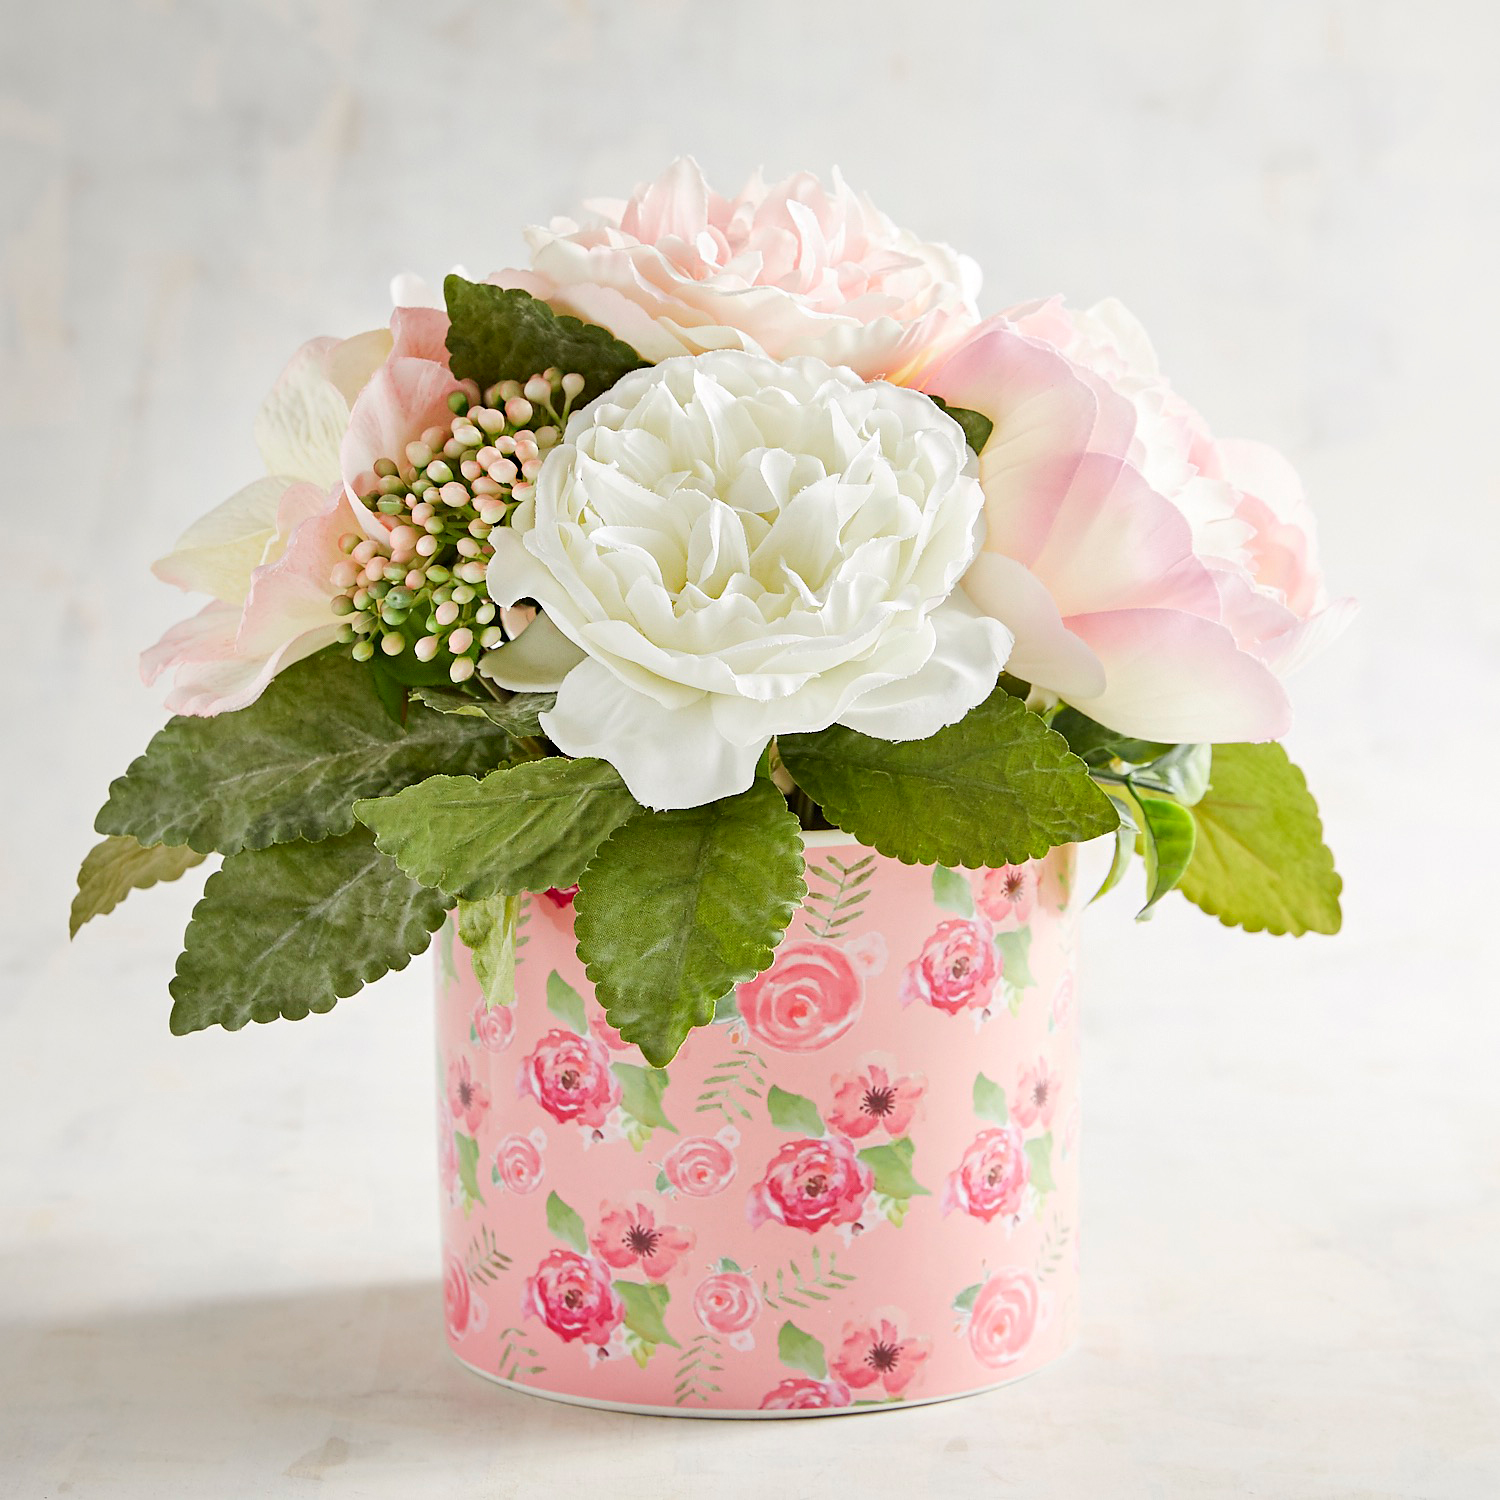 Faux Pink Anemone Floral Arrangement in Floral Printed Pot